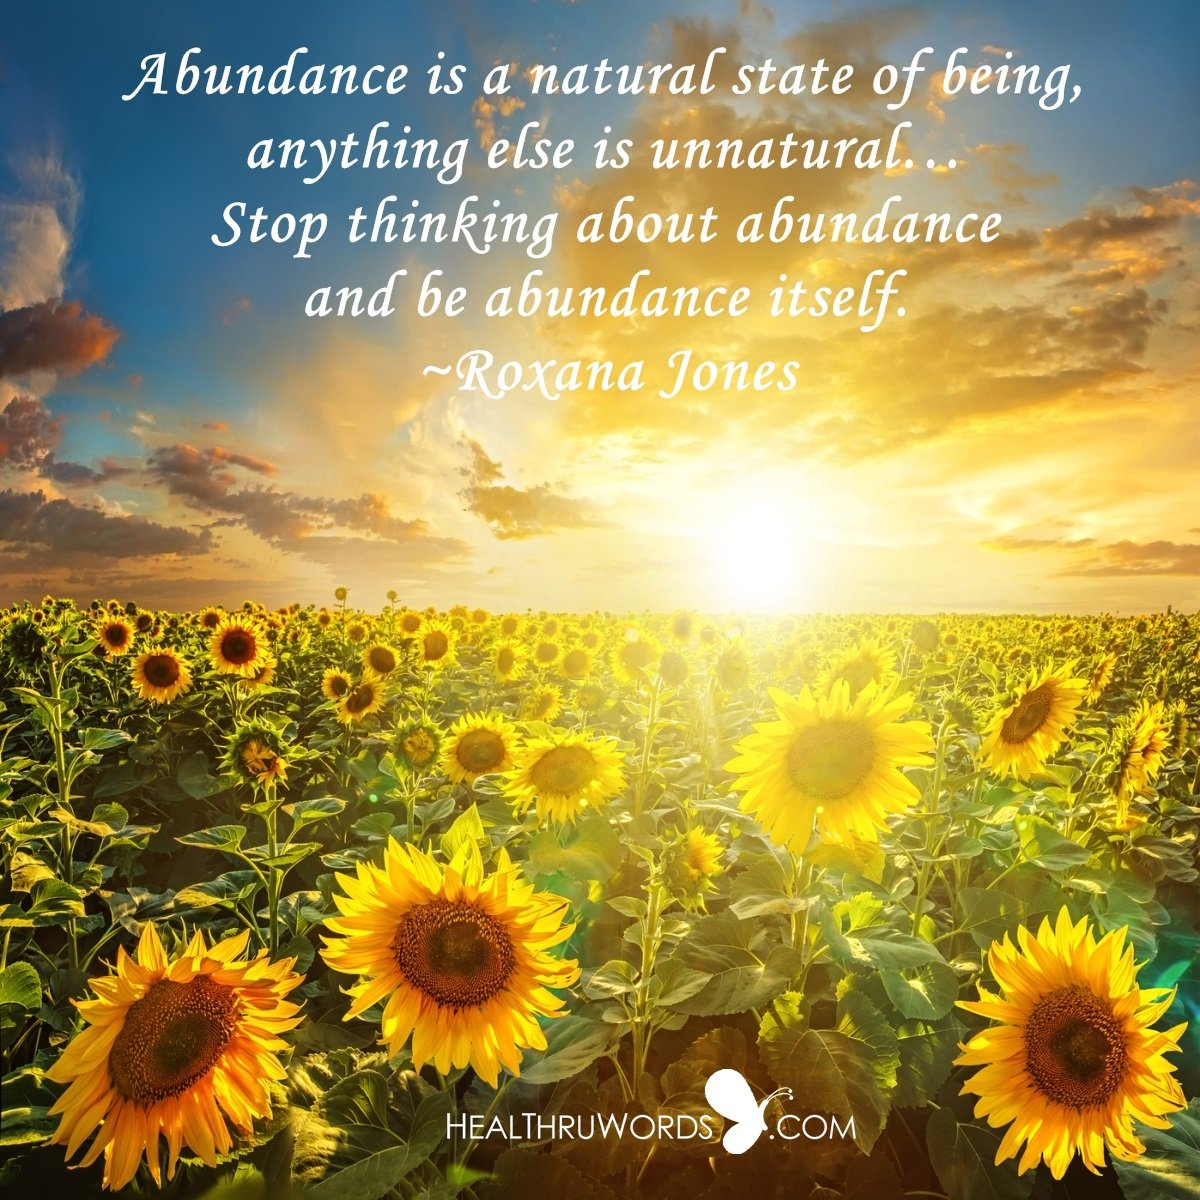 Inspirational Image: Your Abundant Essence